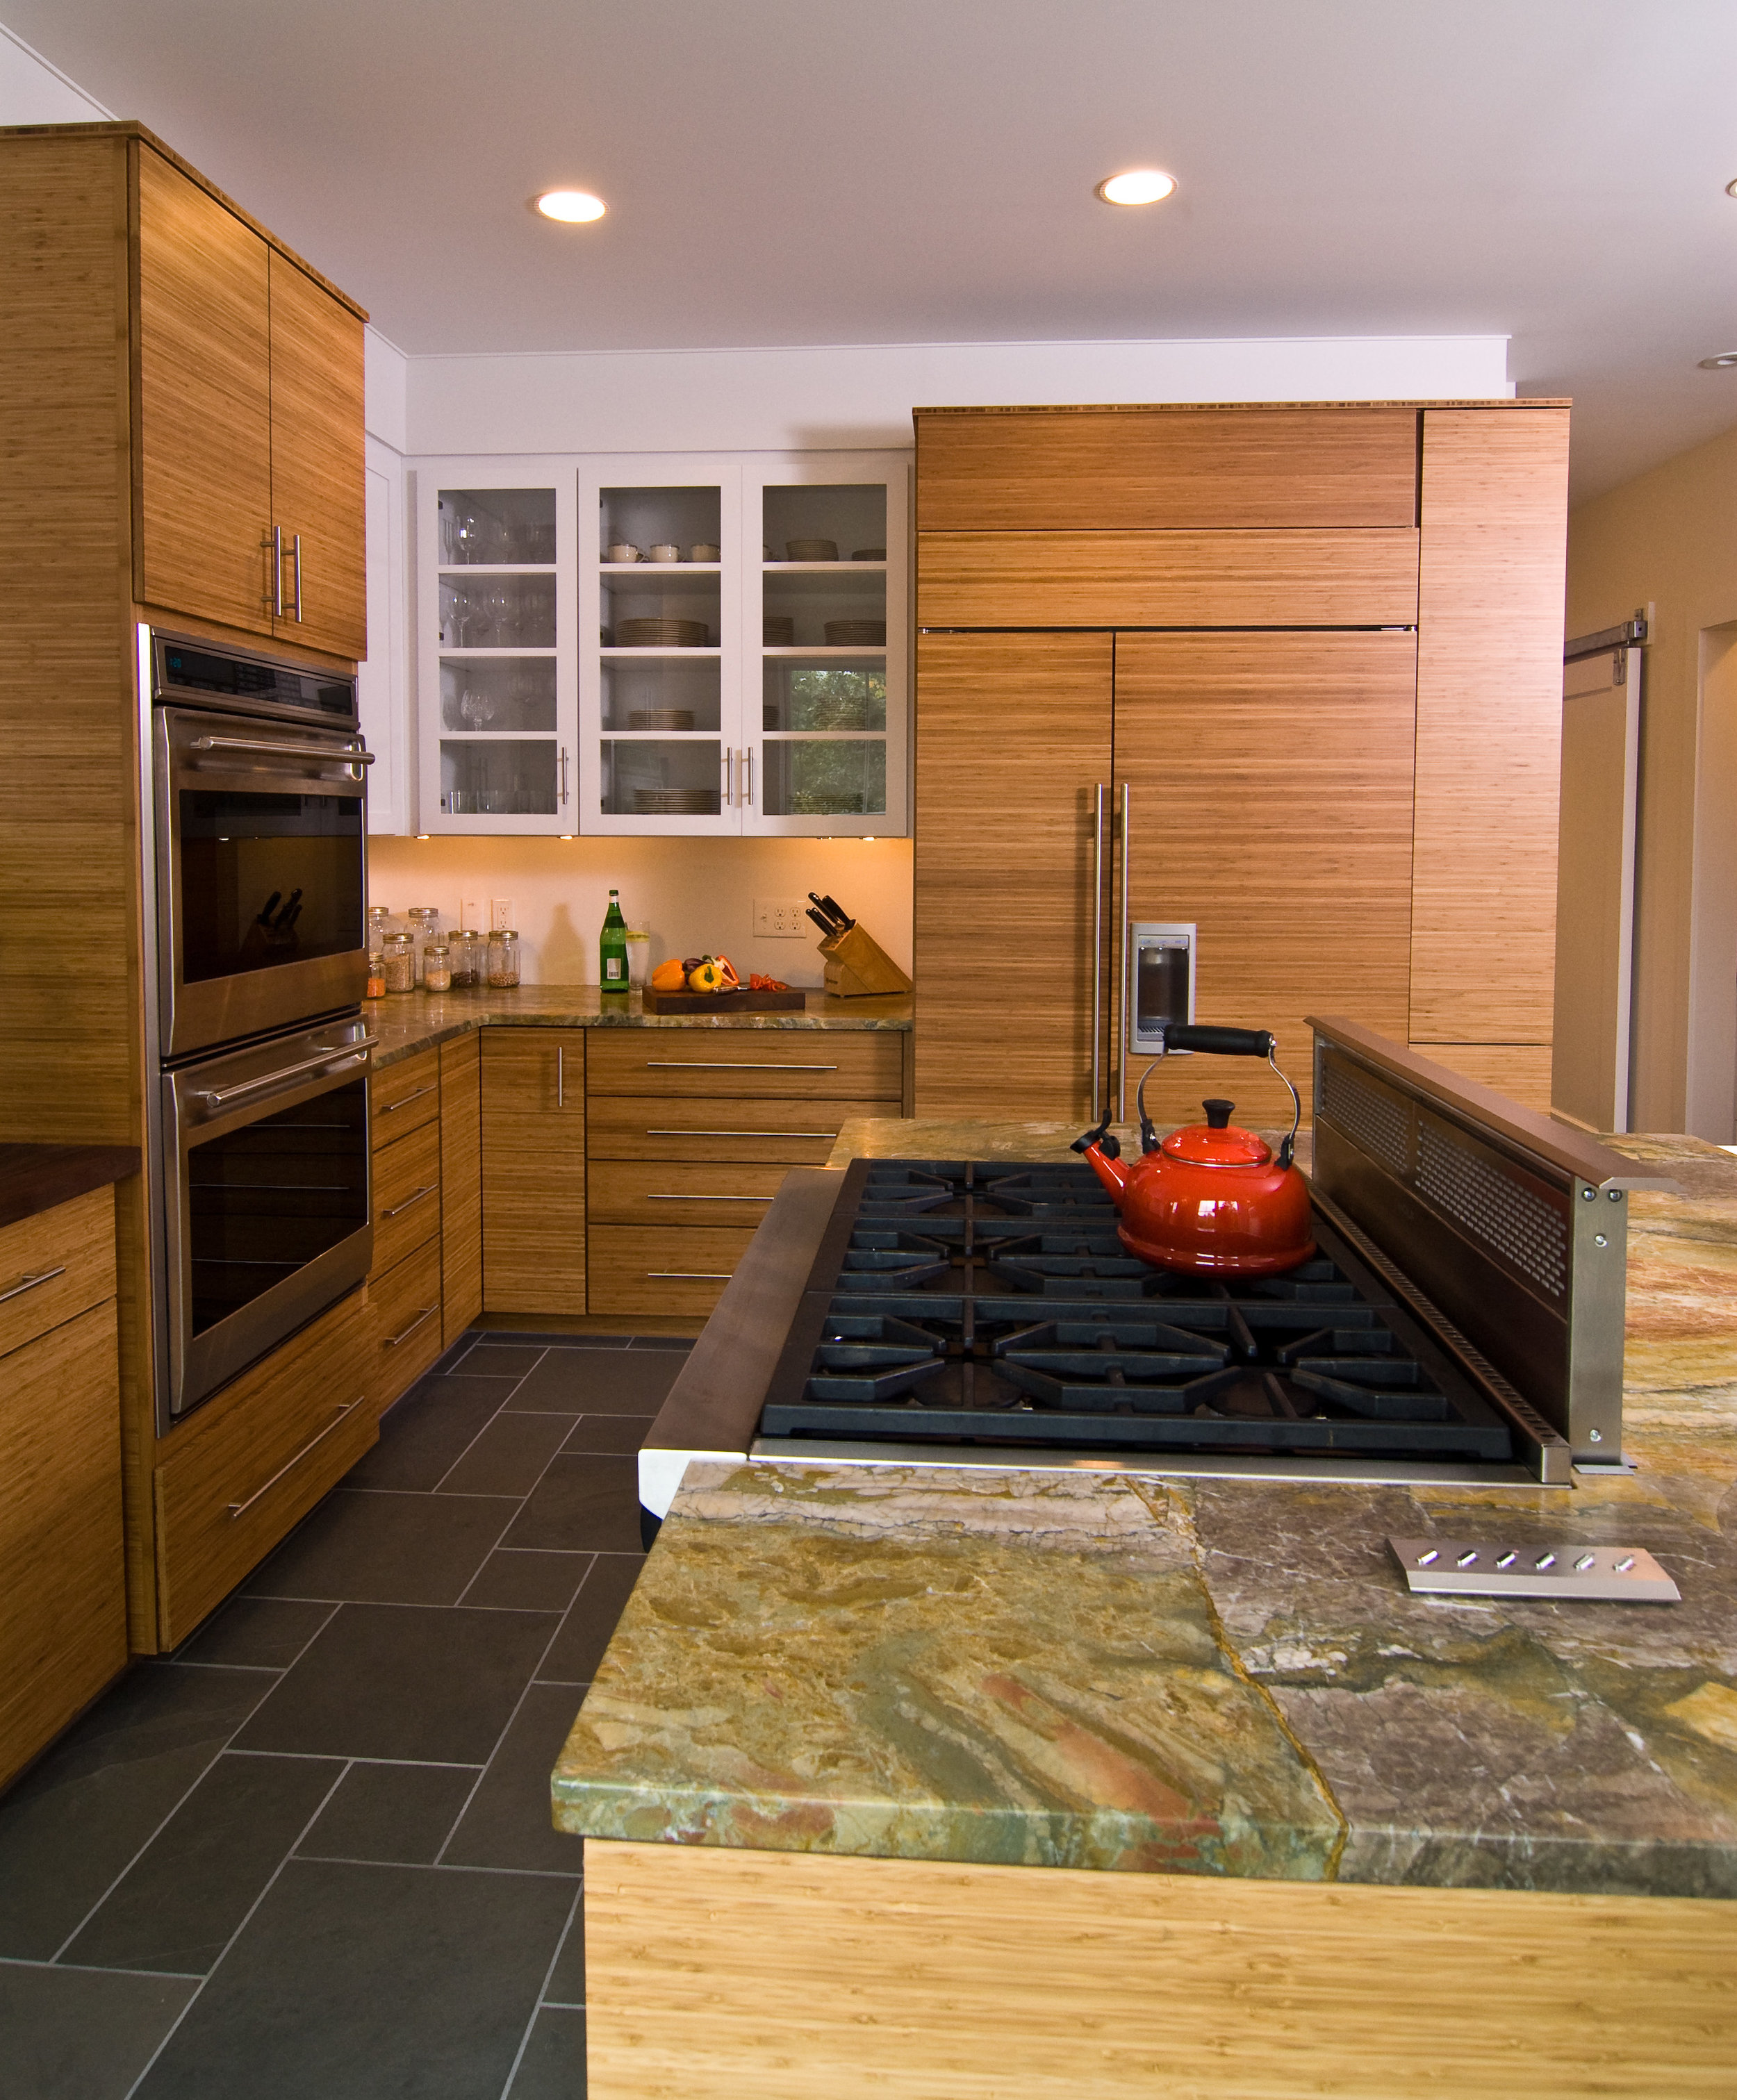 Designed by Erica Smith CMKBD, CAPS / Plato Woodwork, Caramelized Horizontal Grain Bamboo and Arctic White Painted Cabinetry